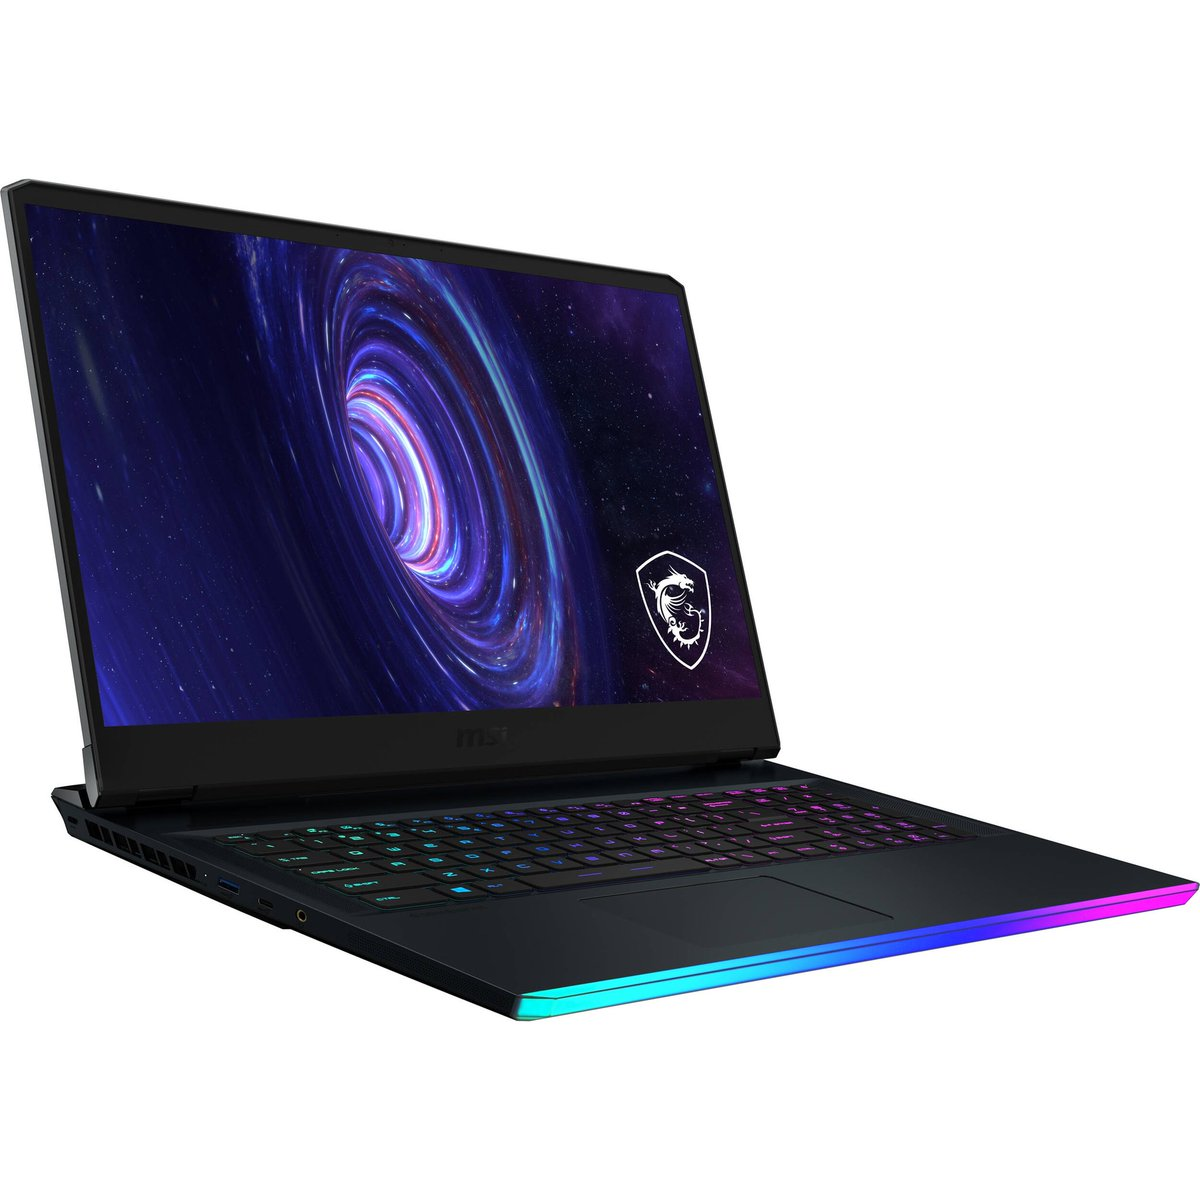 Reminder: @UpdatedOnline is sponsoring a HUGE giveaway on my channel for a new MSI gaming laptop! Must RETWEET this and be followed to us both here and on Twitch to be qualified to win! Sunday 6PM EST. #giveaway #twitch  ()   ()  .